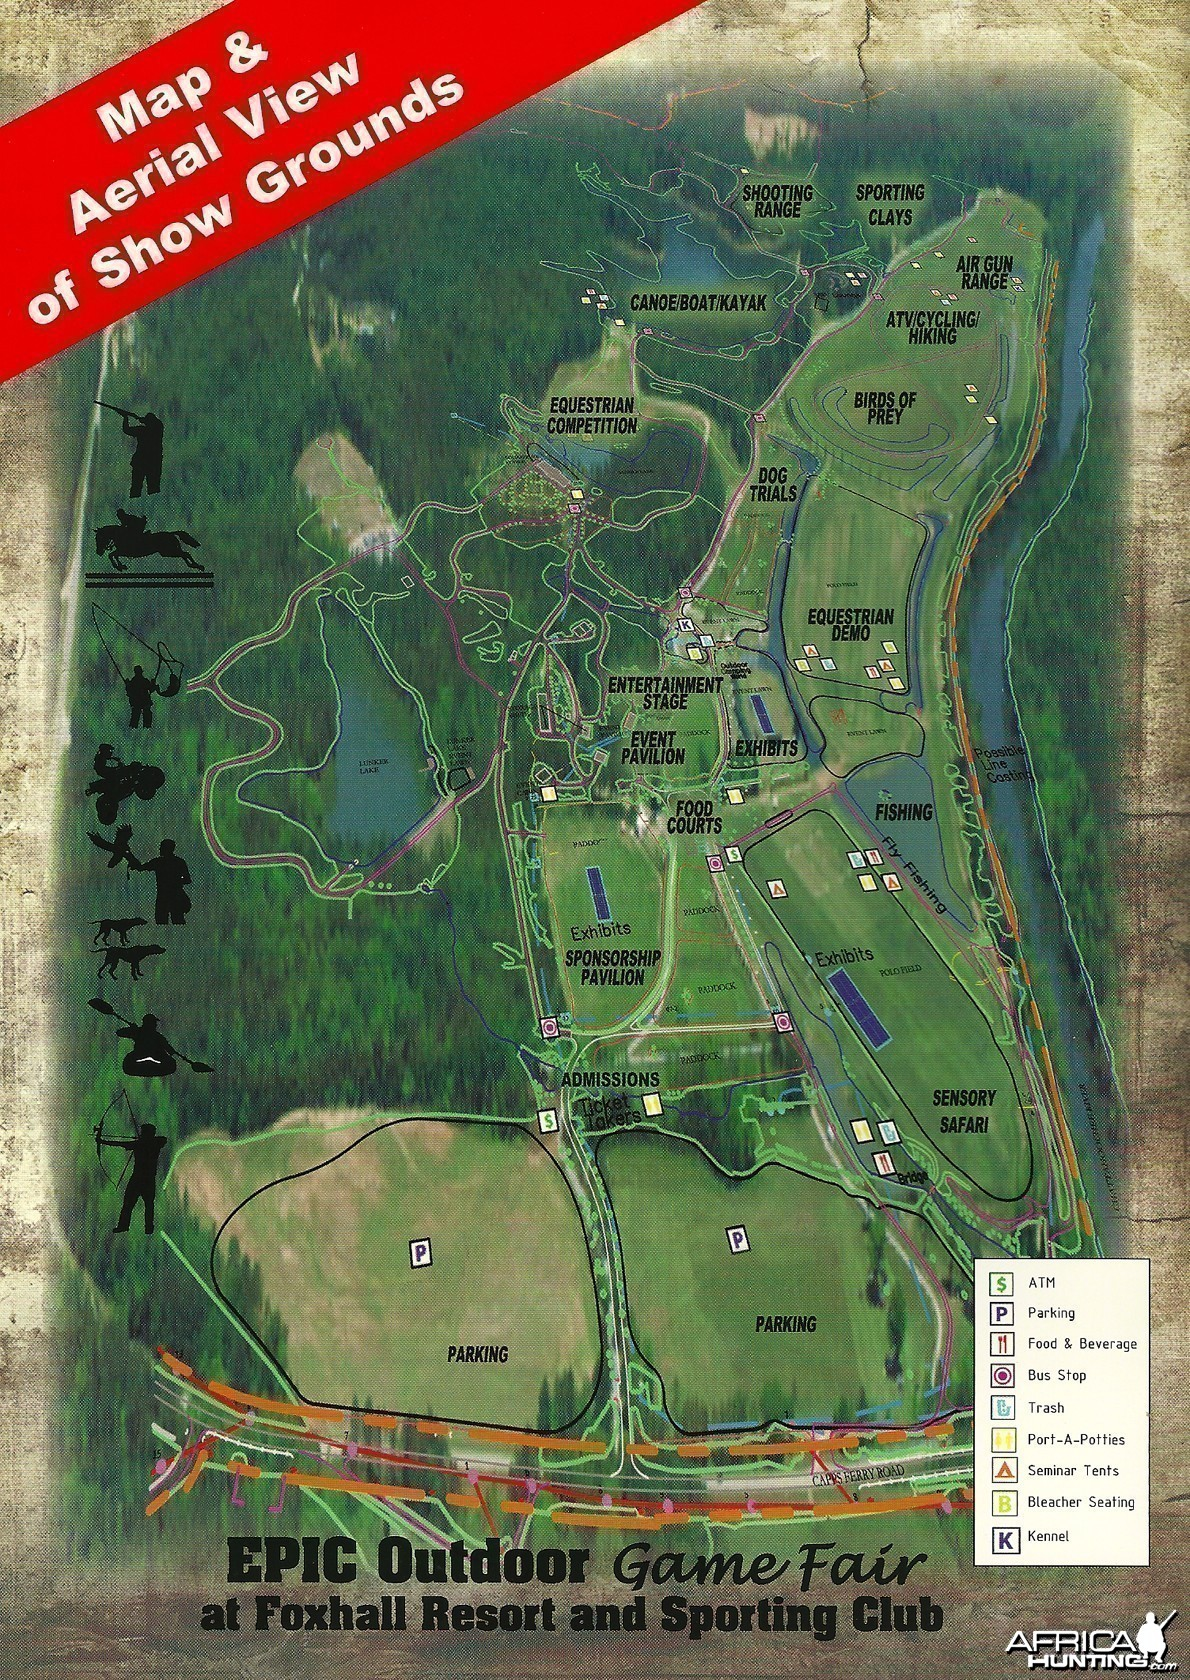 EPIC Outdoor Game Fair Map